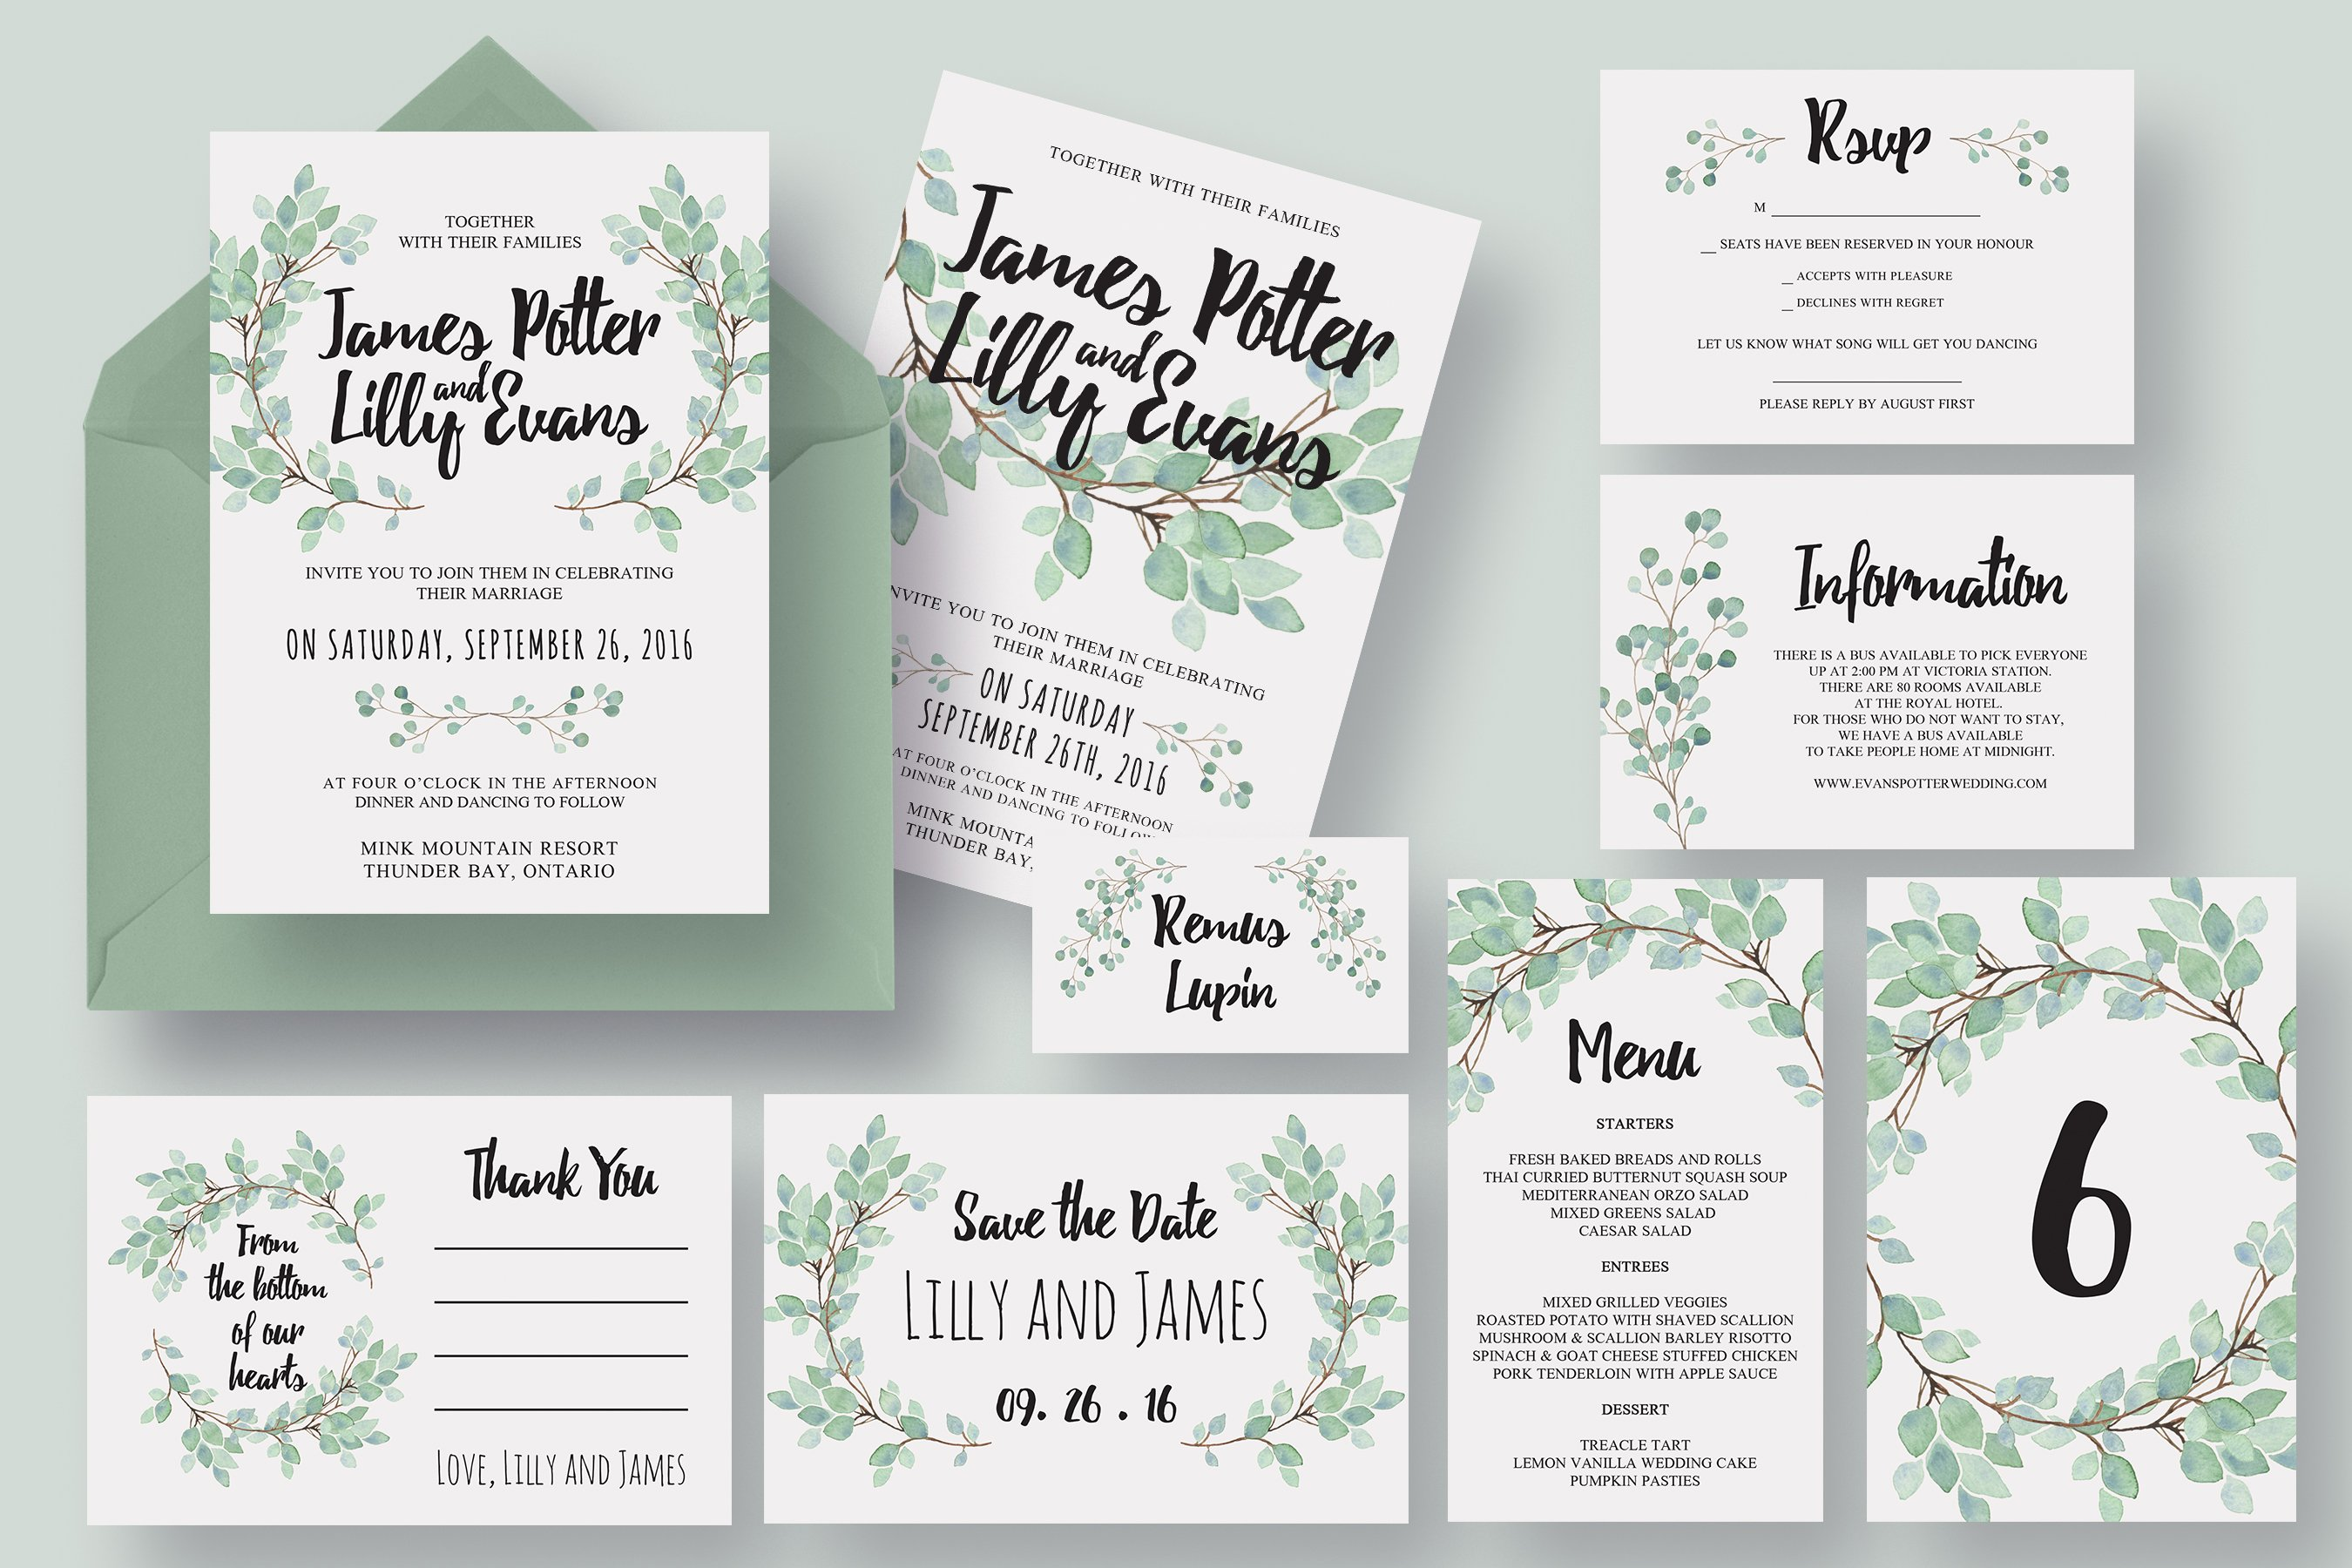 Eucalyptus wedding invitation suite invitation templates for Wedding invitation suite what to include